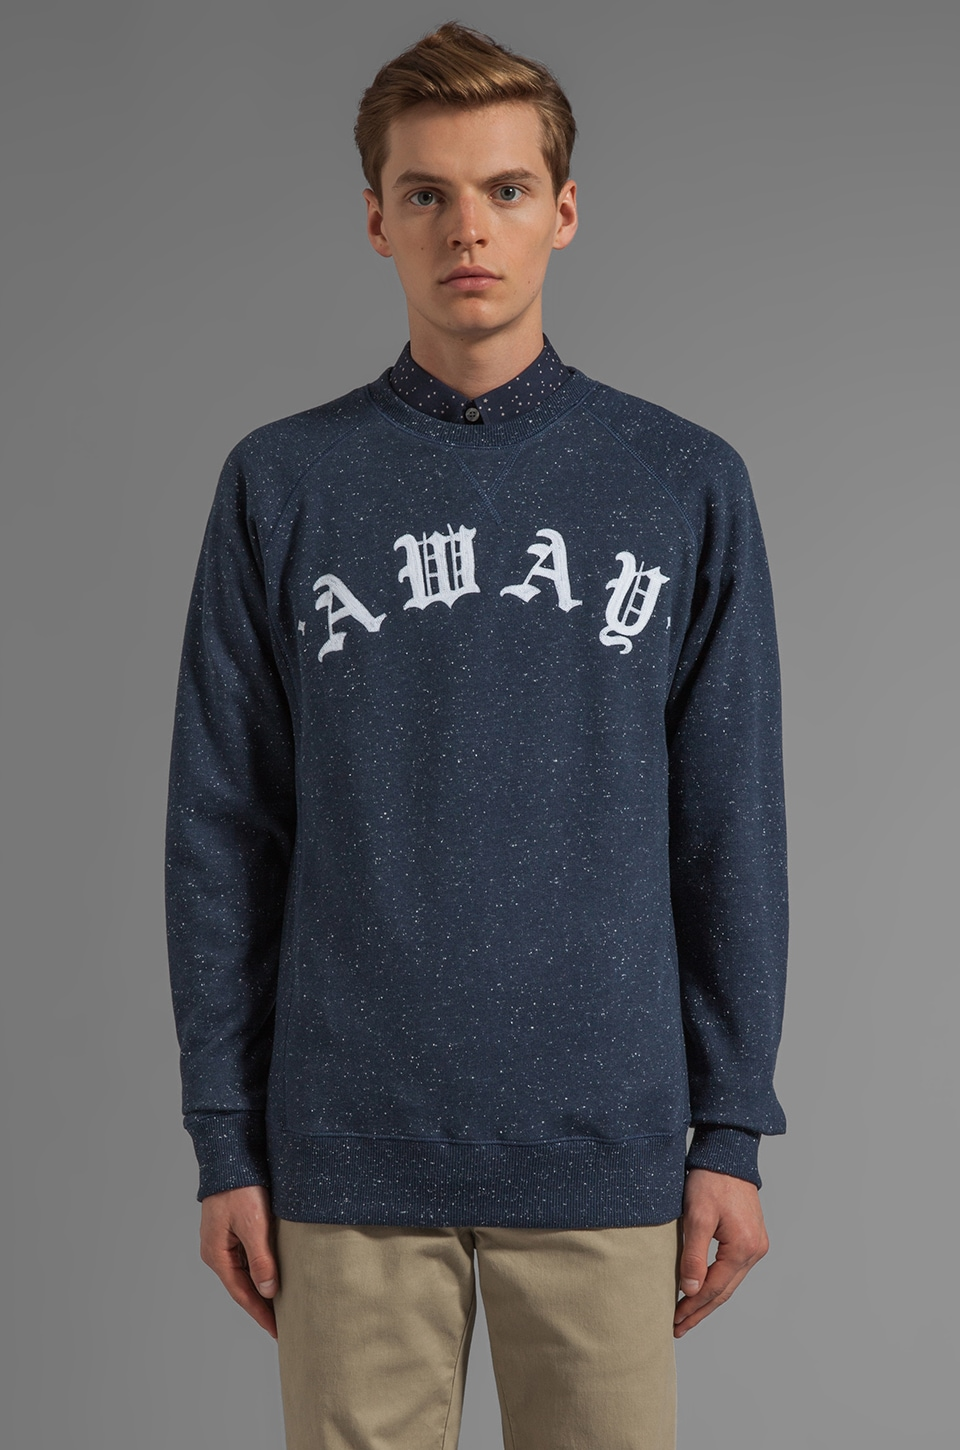 Soulland Away Raglan Sweatshirt in Navy/ White